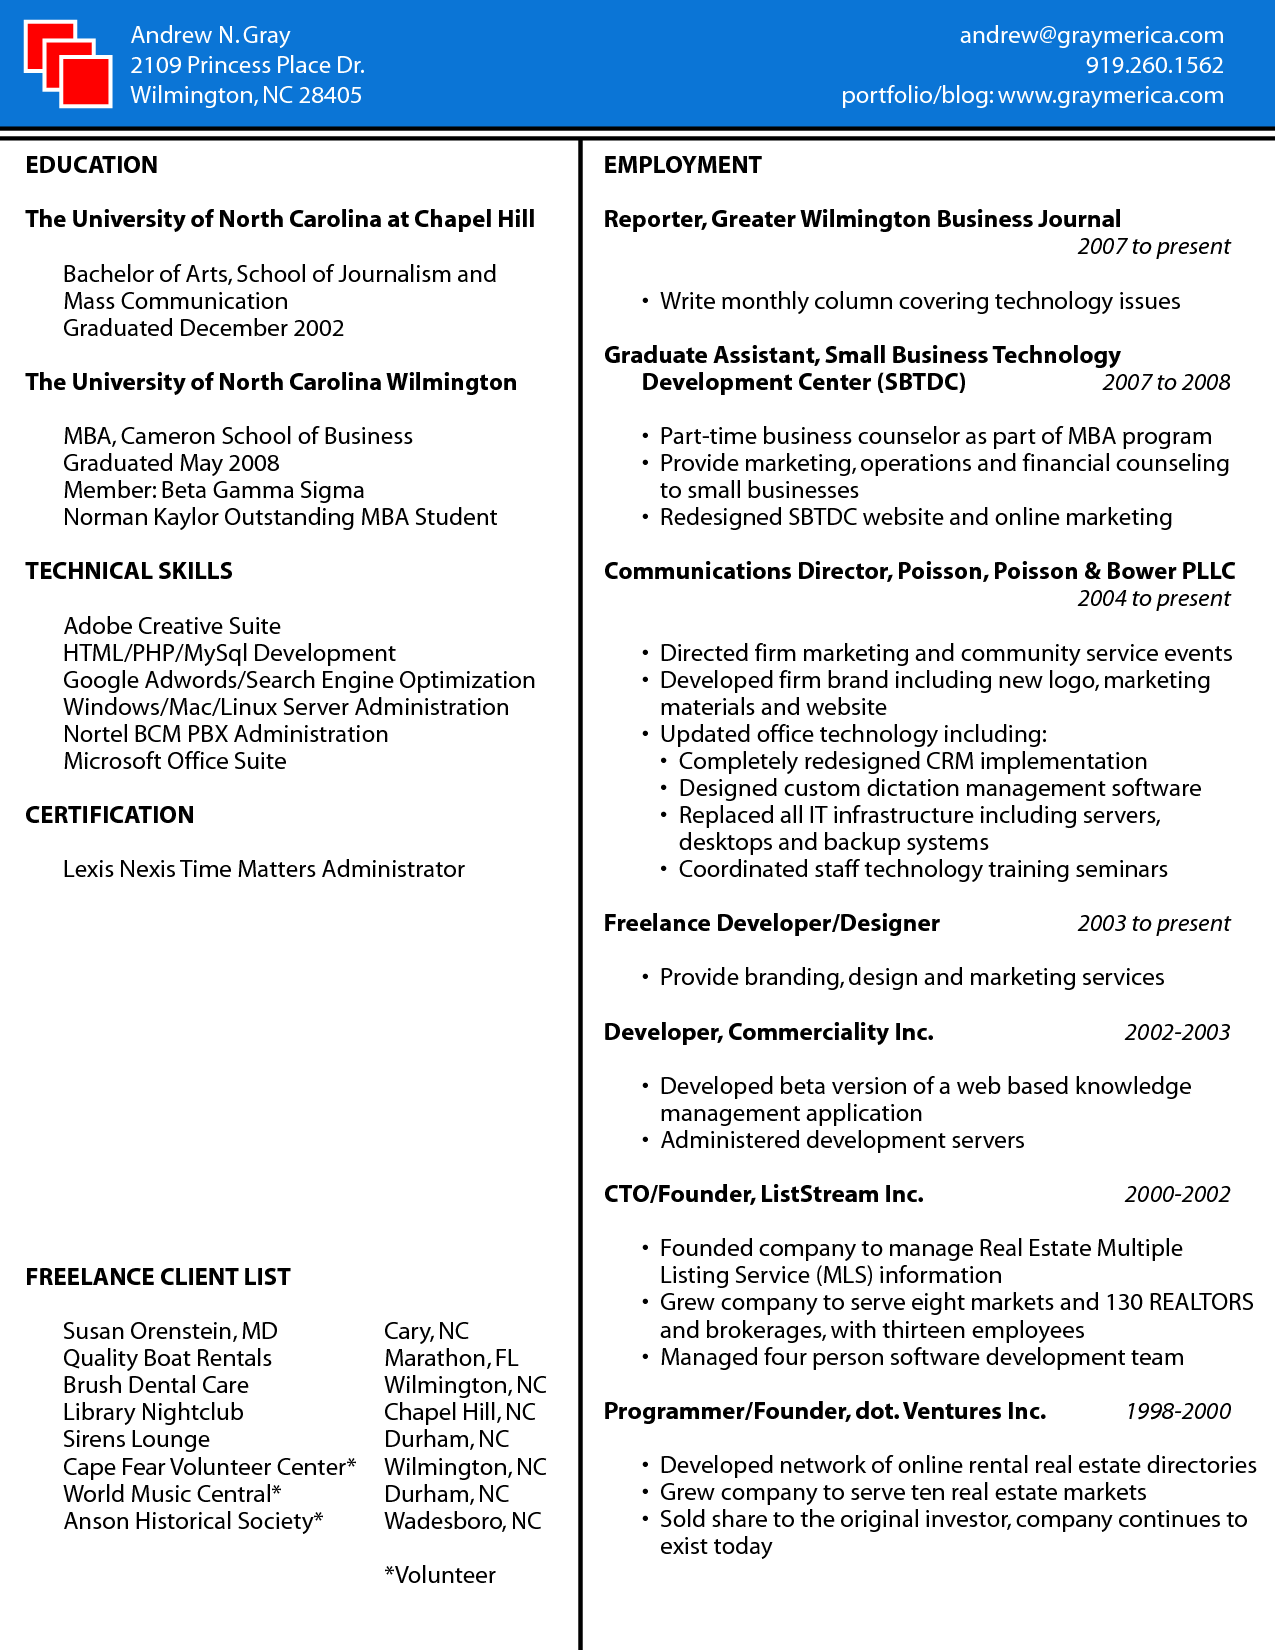 Resume Templates Microsoft Word 2010 Simple Resume Templates Microsoft Word 2008 Resume Templates Microsoft Word .